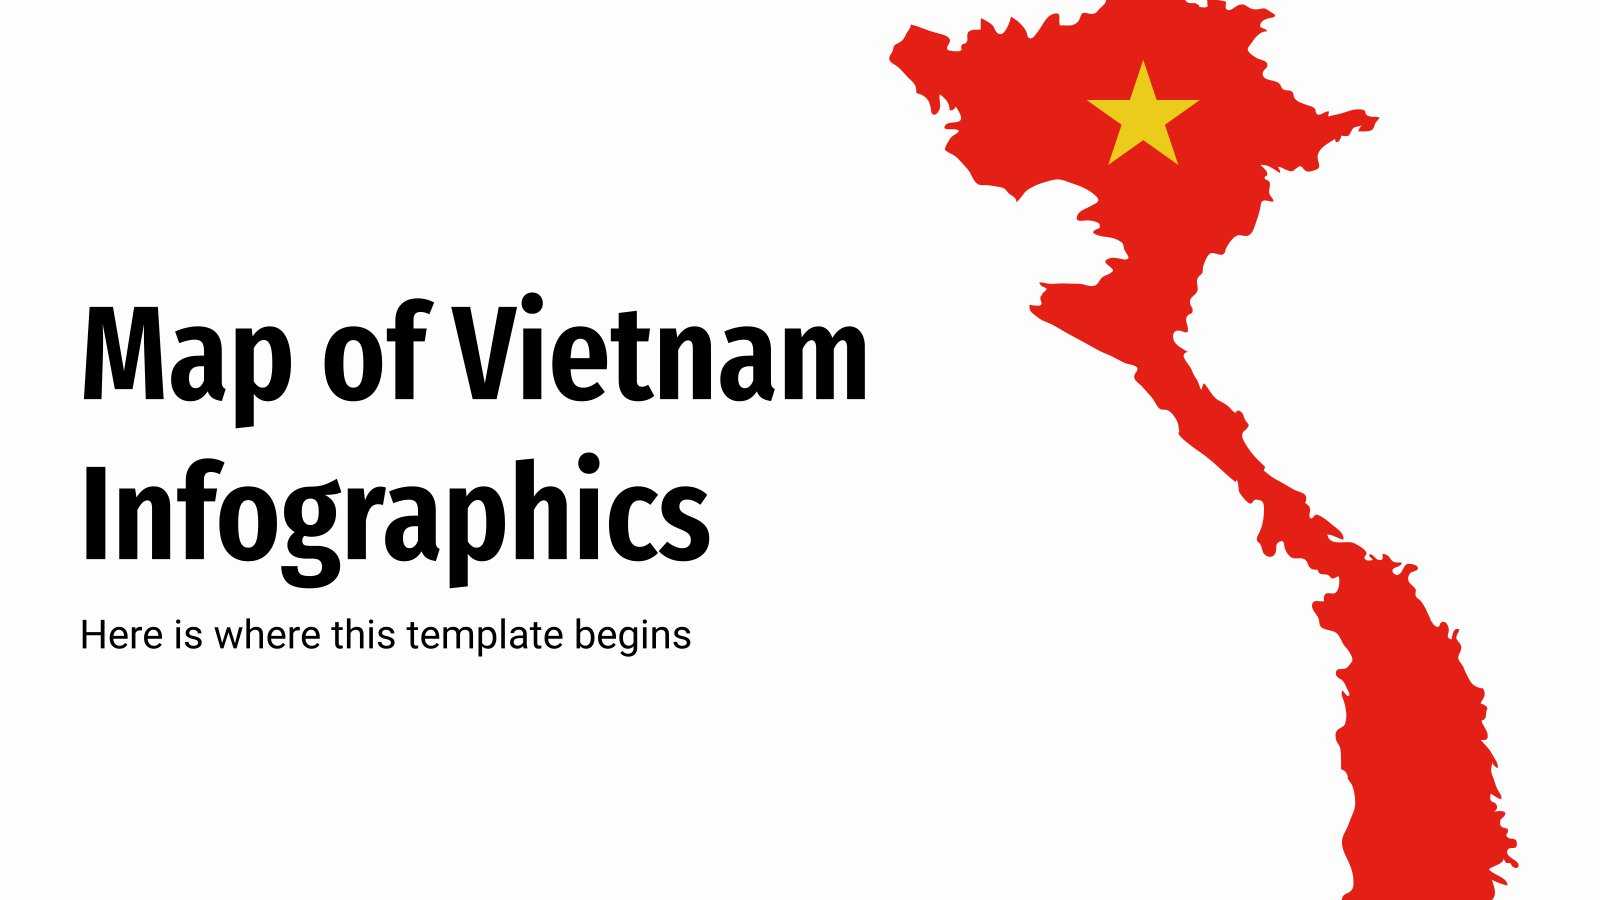 Map of Vietnam Infographics presentation template